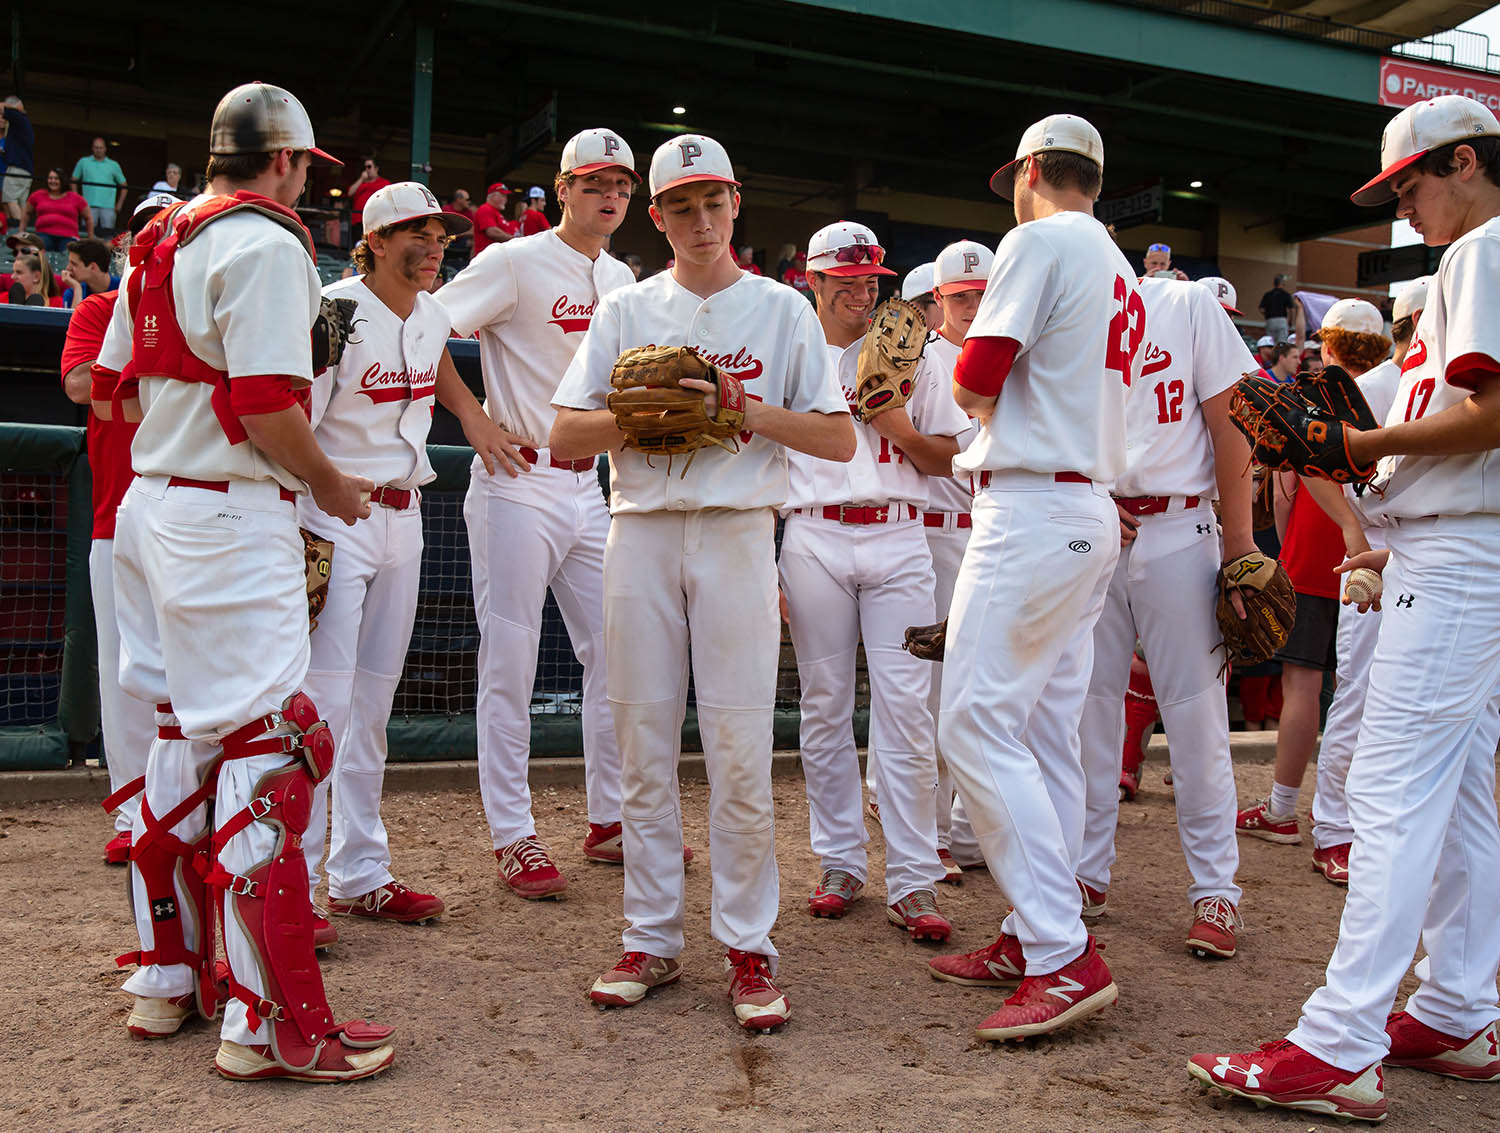 Pleasant Plains' Nick Skinner (5) gets ready with his teammates to take on Teutopolis in the IHSA Class 2A State Championship game at Dozer Park, Saturday, June 1, 2019, in Peoria, Ill. [Justin L. Fowler/The State Journal-Register]